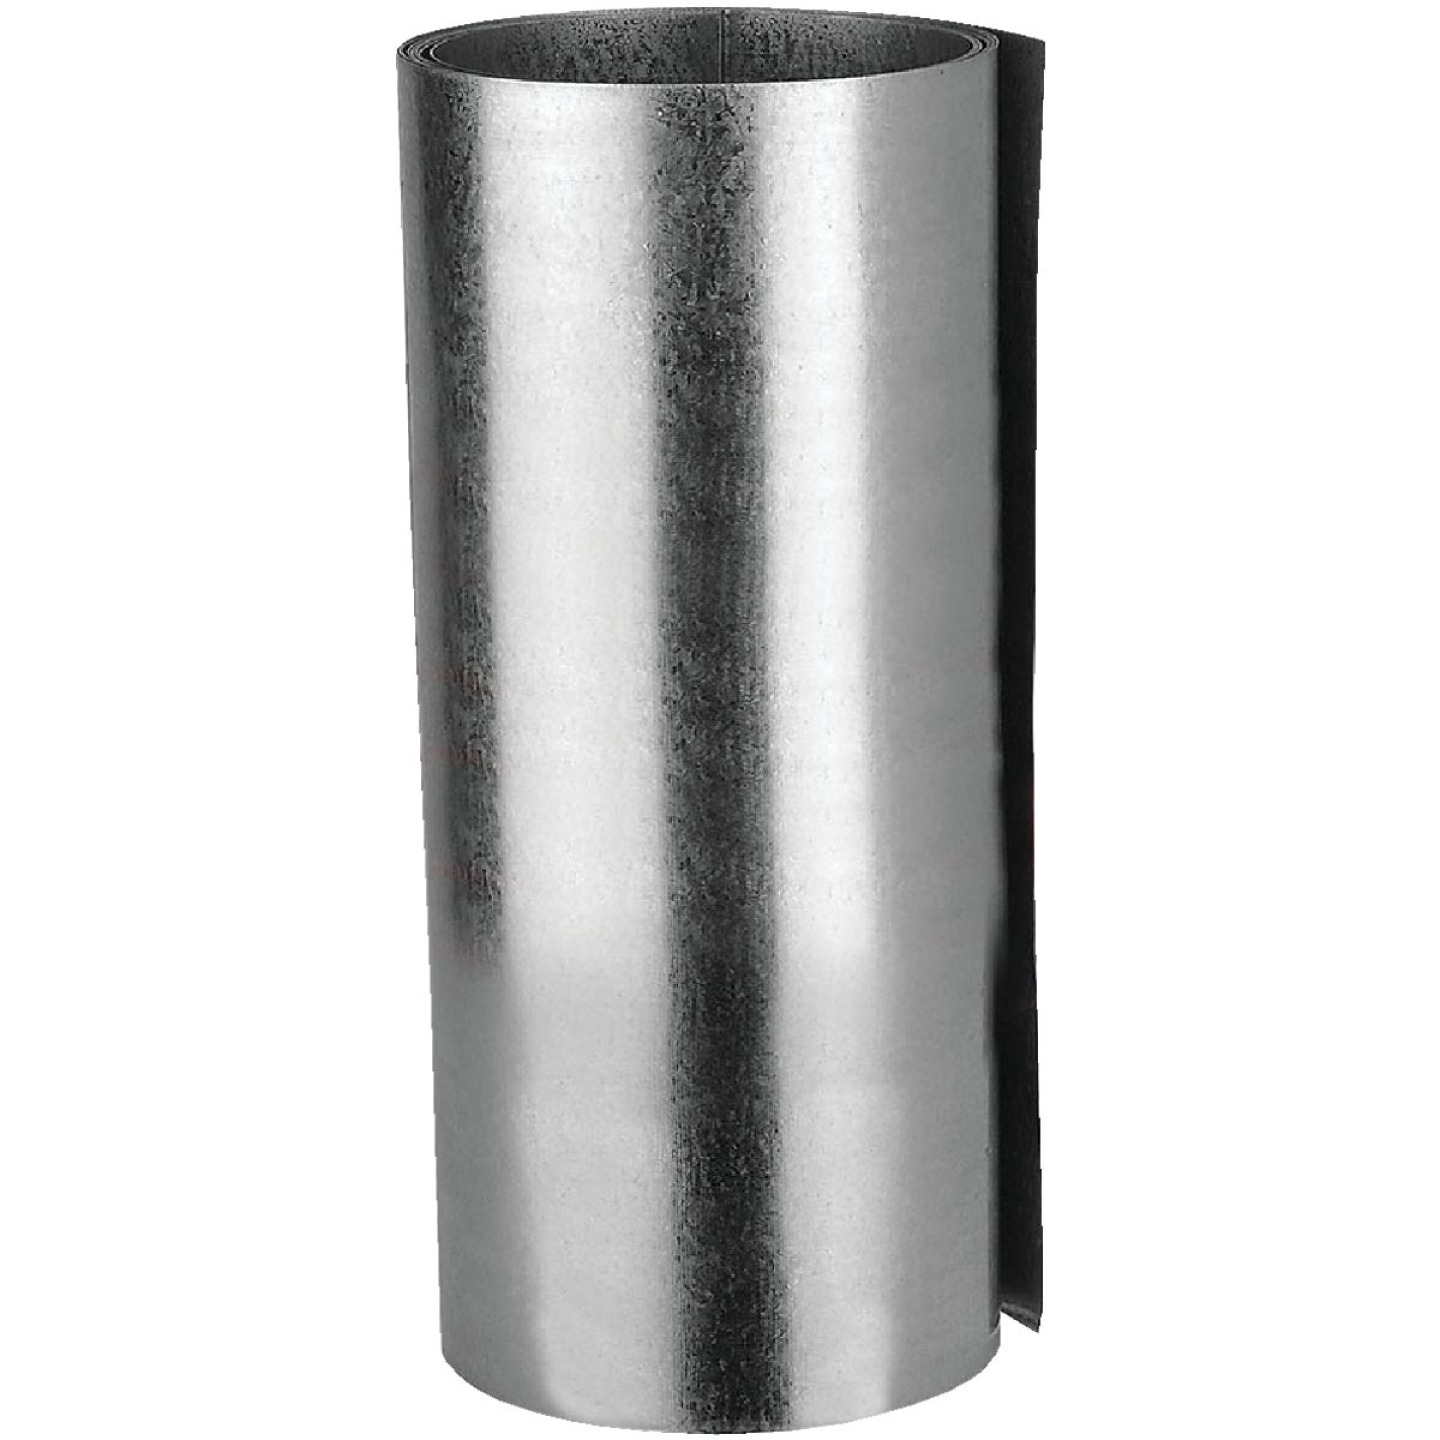 NorWesco 20 In. x 50 Ft. Mill Galvanized Roll Valley Flashing Image 1